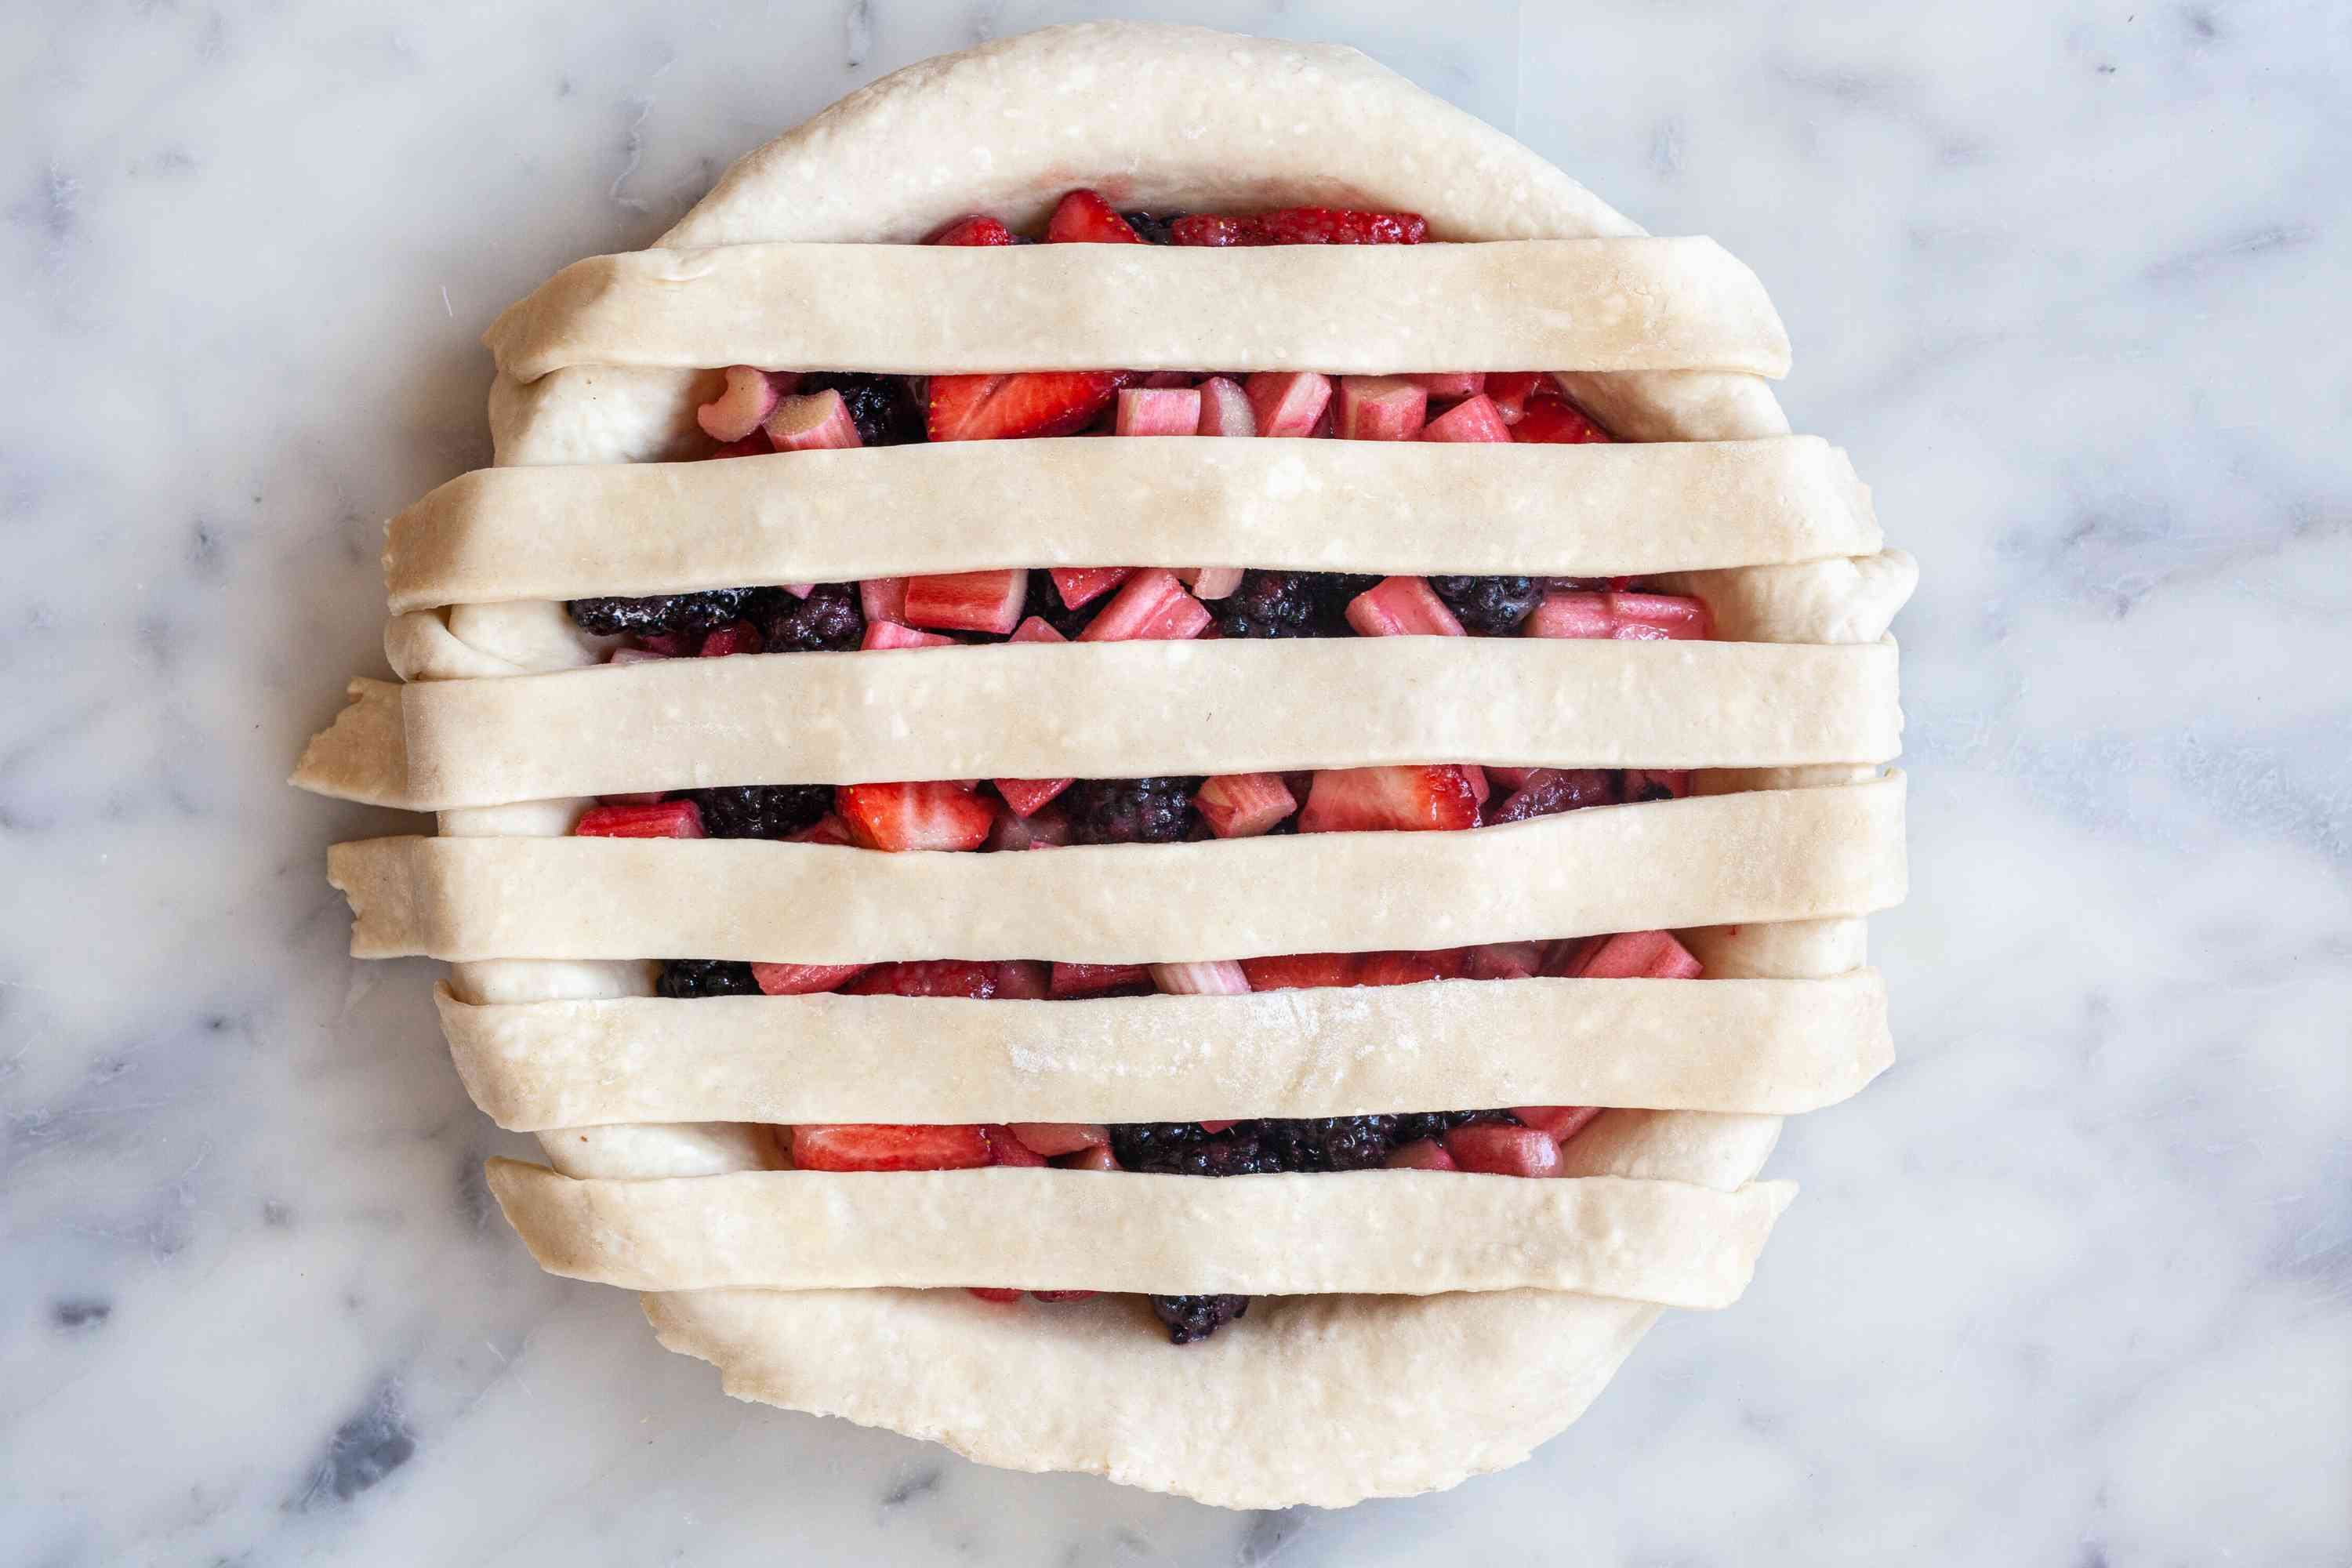 Laying strips over filling to show how to make a lattice crust.